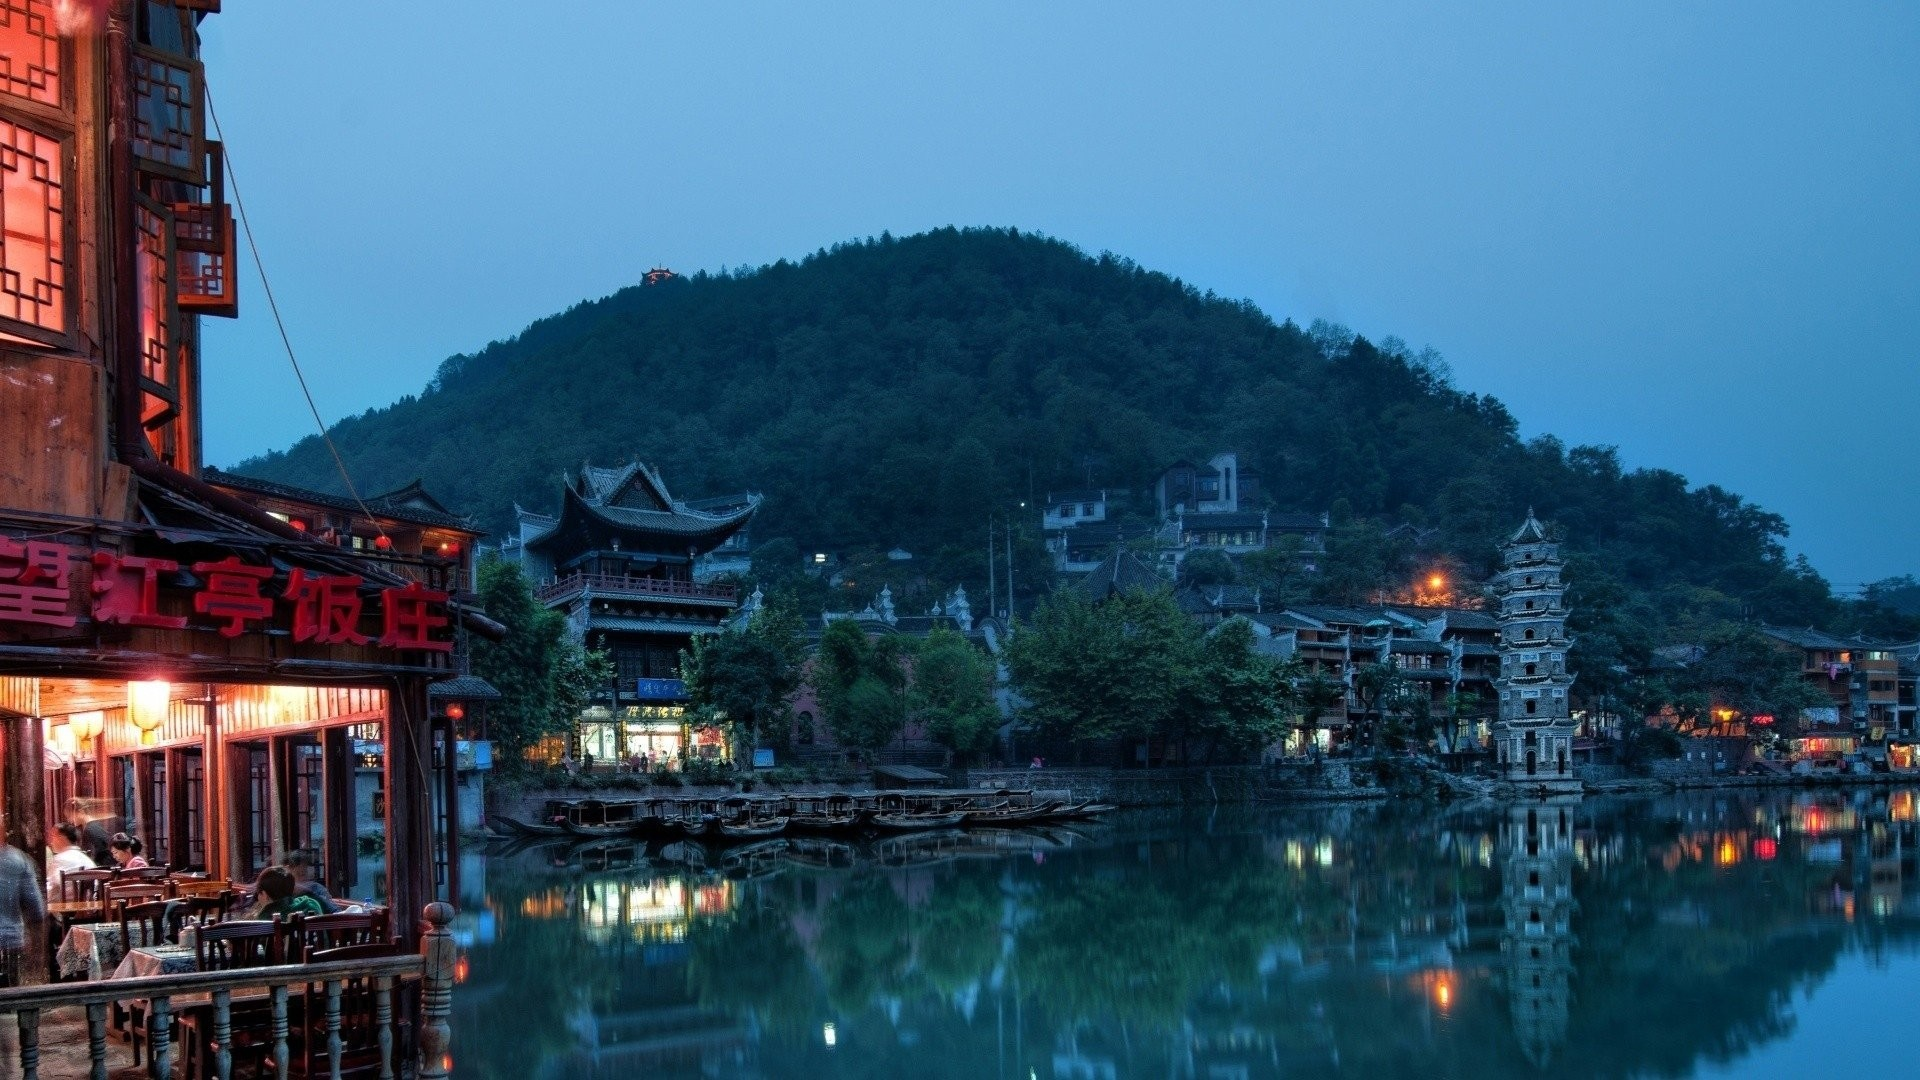 Res: 1920x1080, China house buildings hills trees lake water night sunset lights city  landscape reflection town asian oriental village wallpaper |  |  560790 | ...